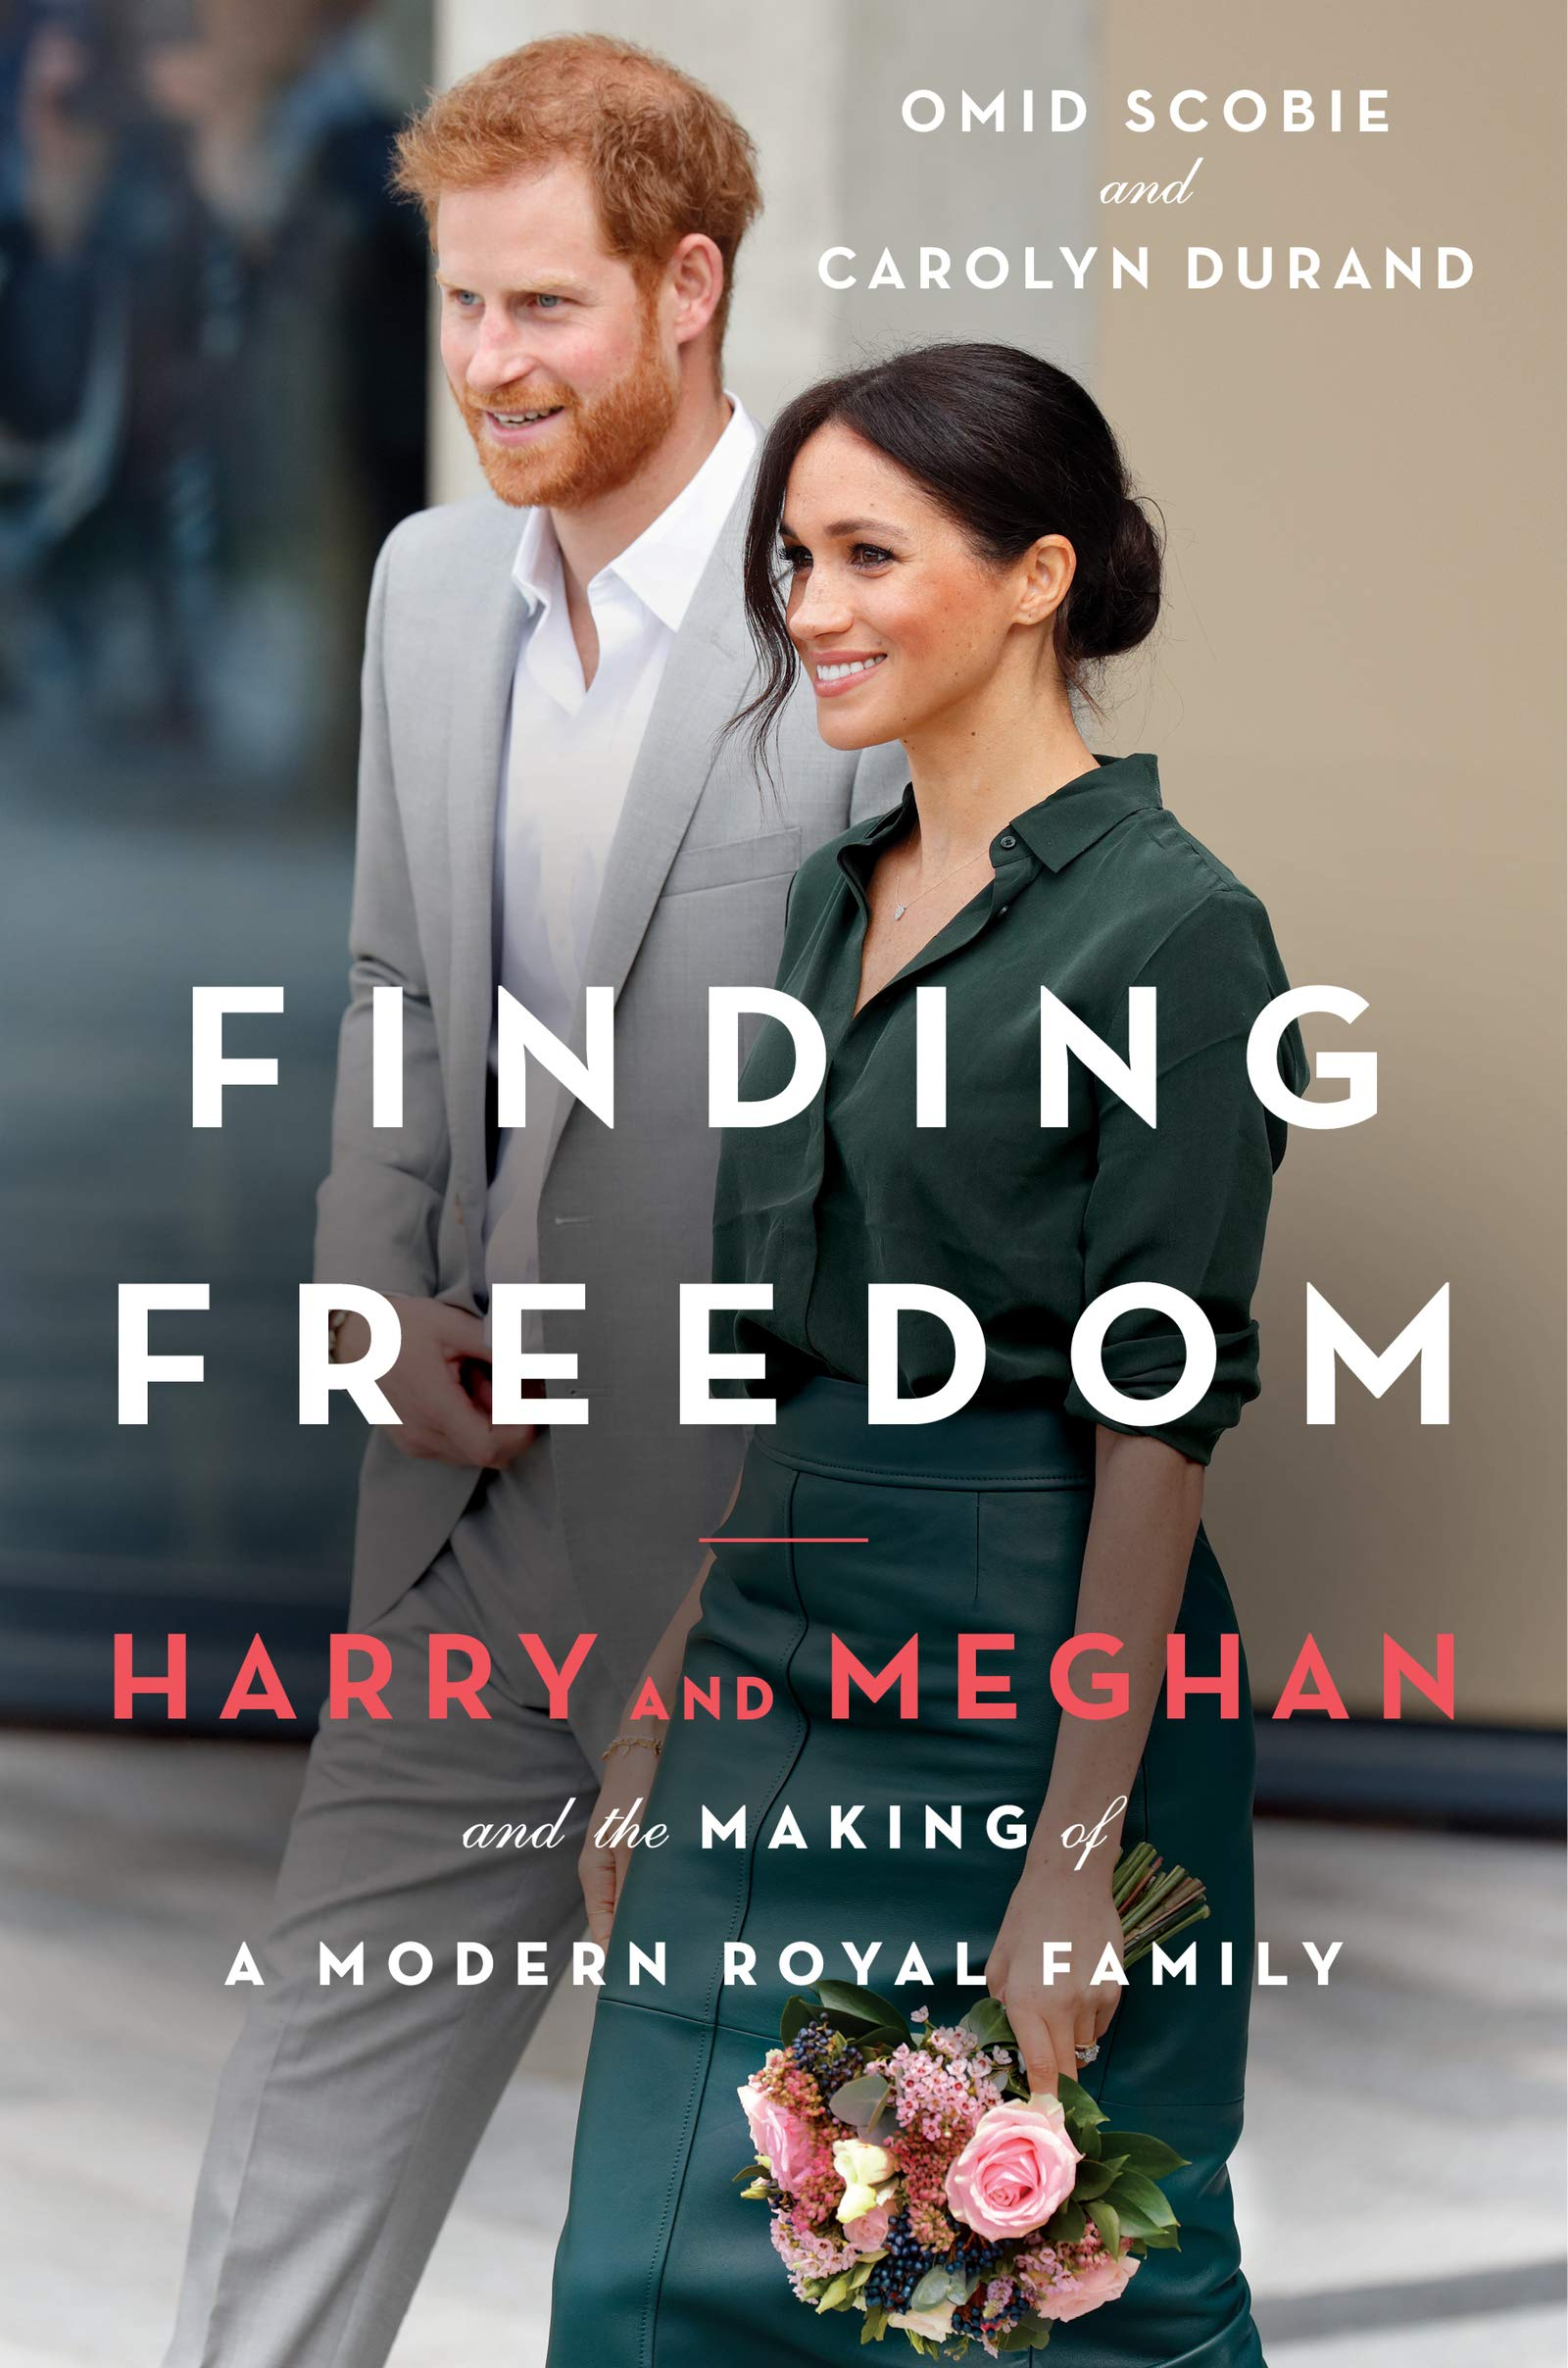 Finding Freedom: Harry, Meghan, and the Making of a Modern Royal Family